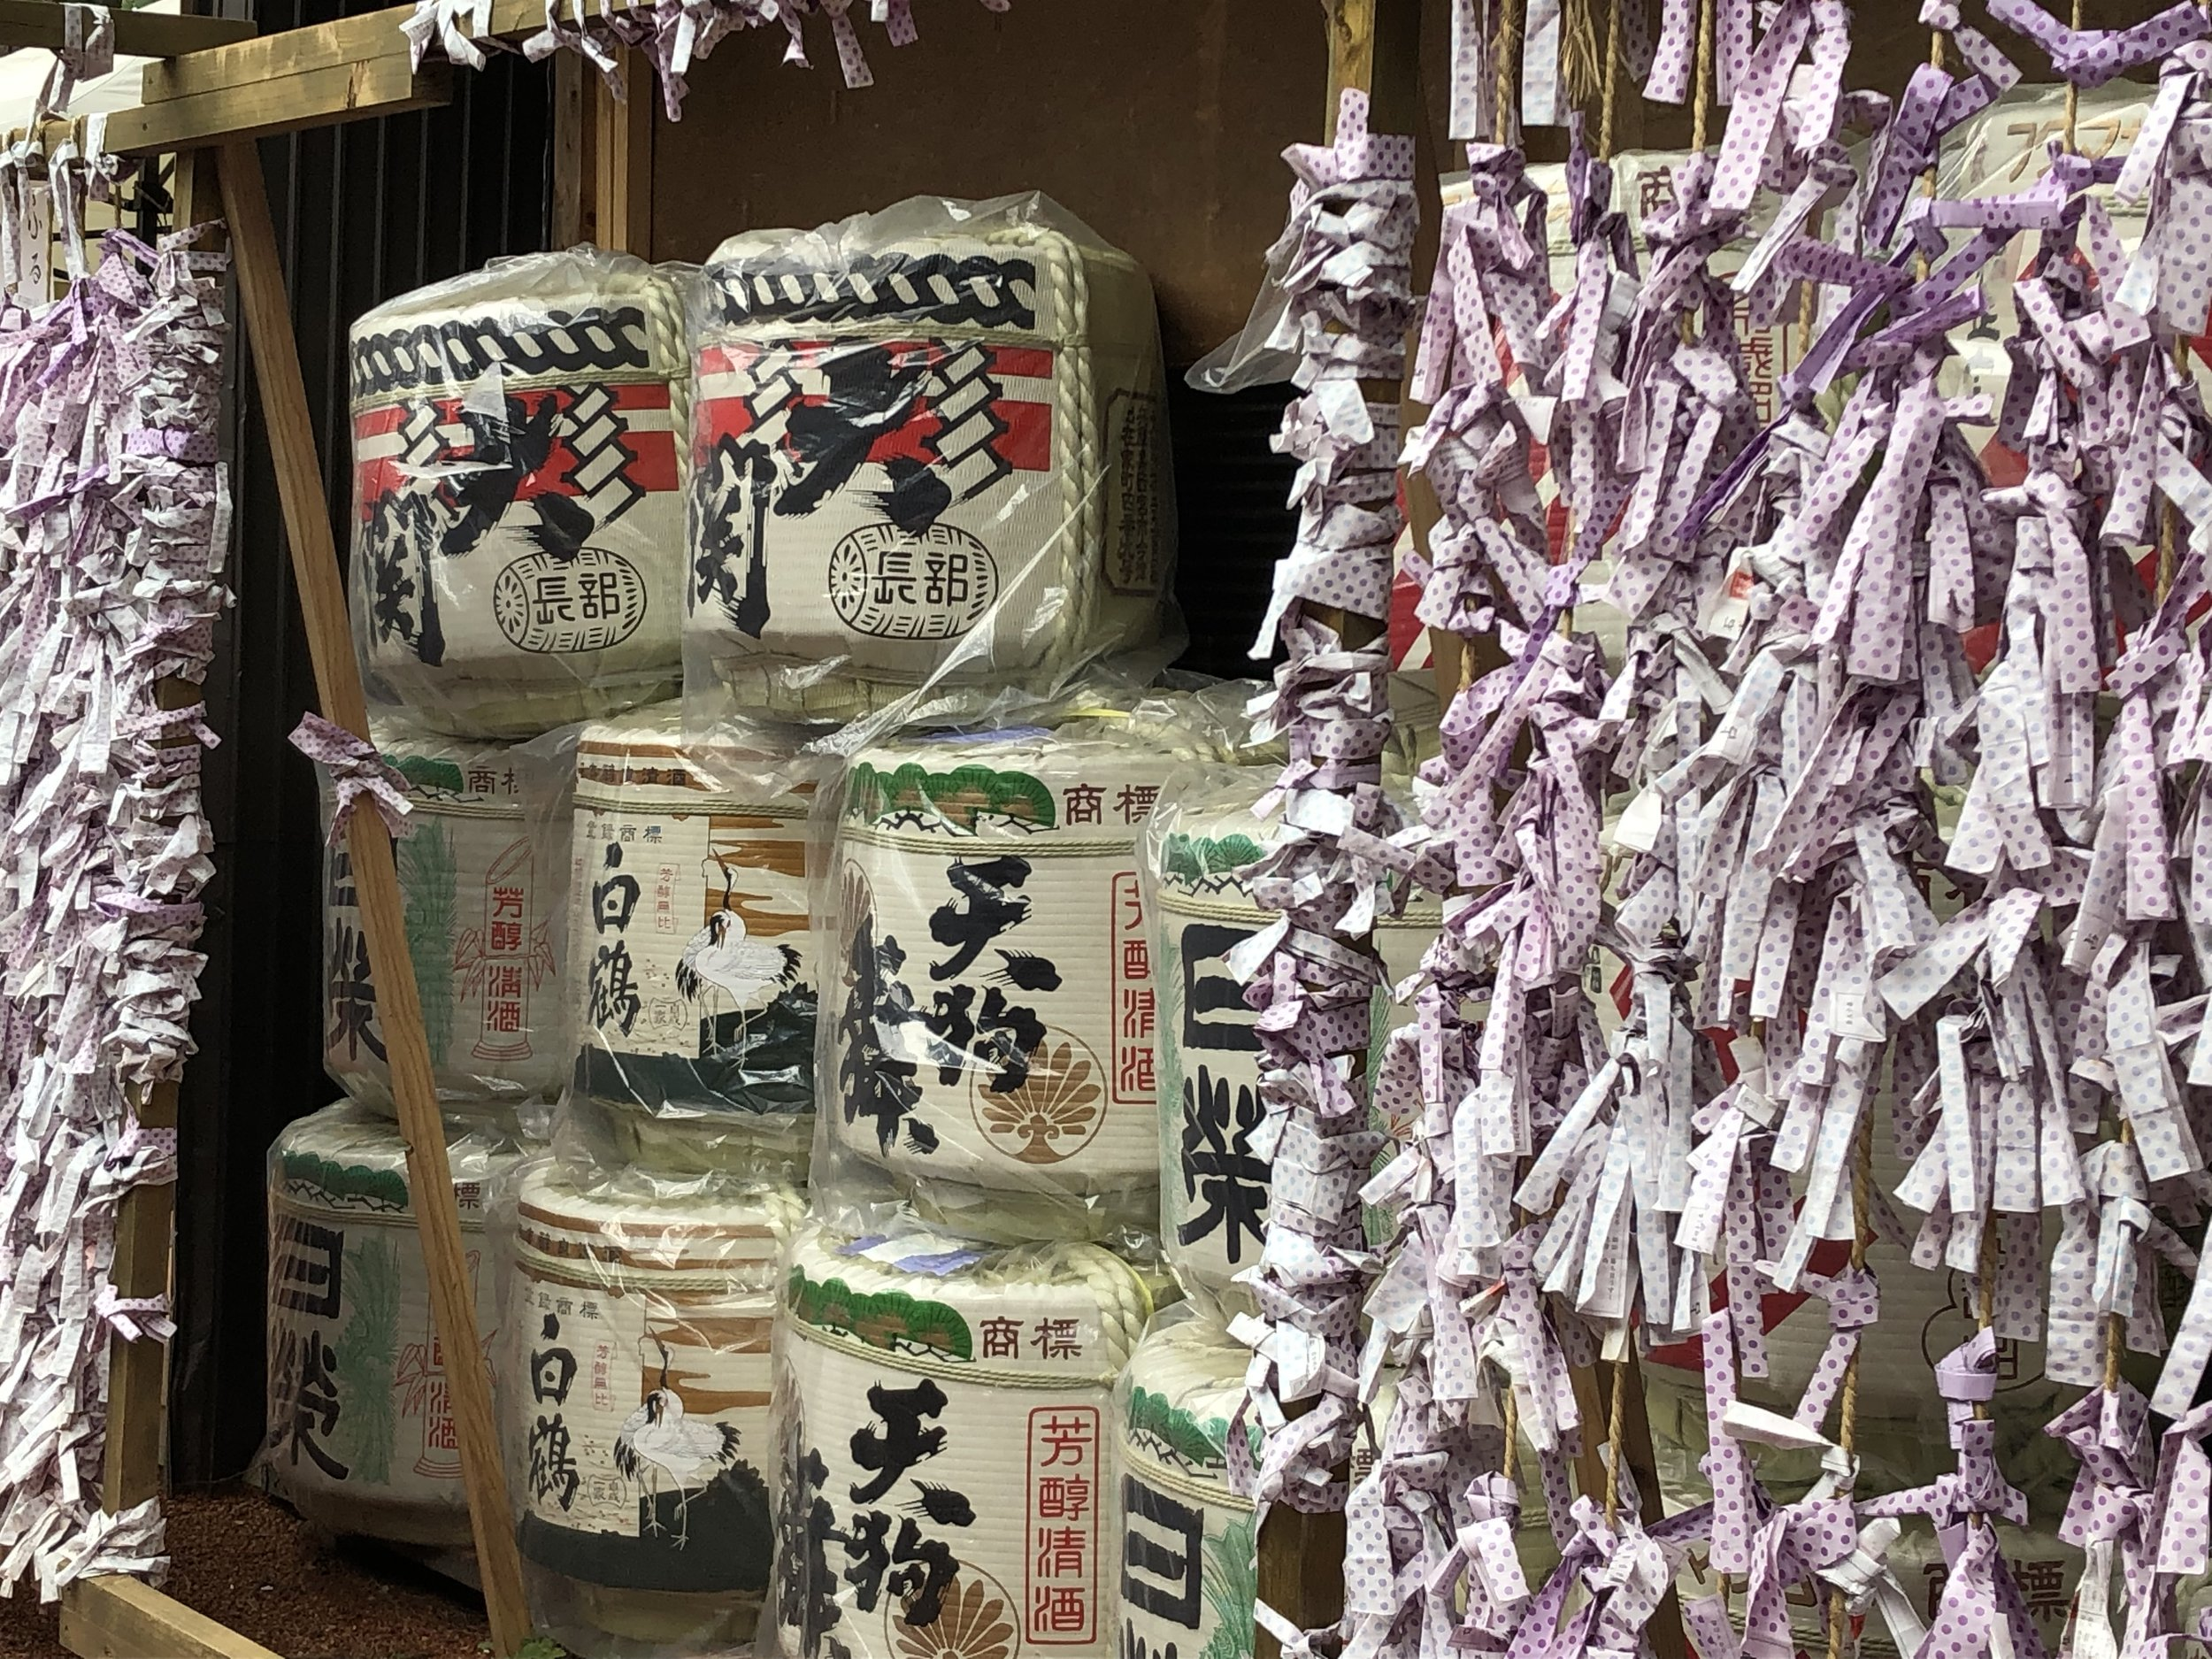 Outside the temple, thousands of wishes are tied to the fences which are interspersed with barrels of saki.